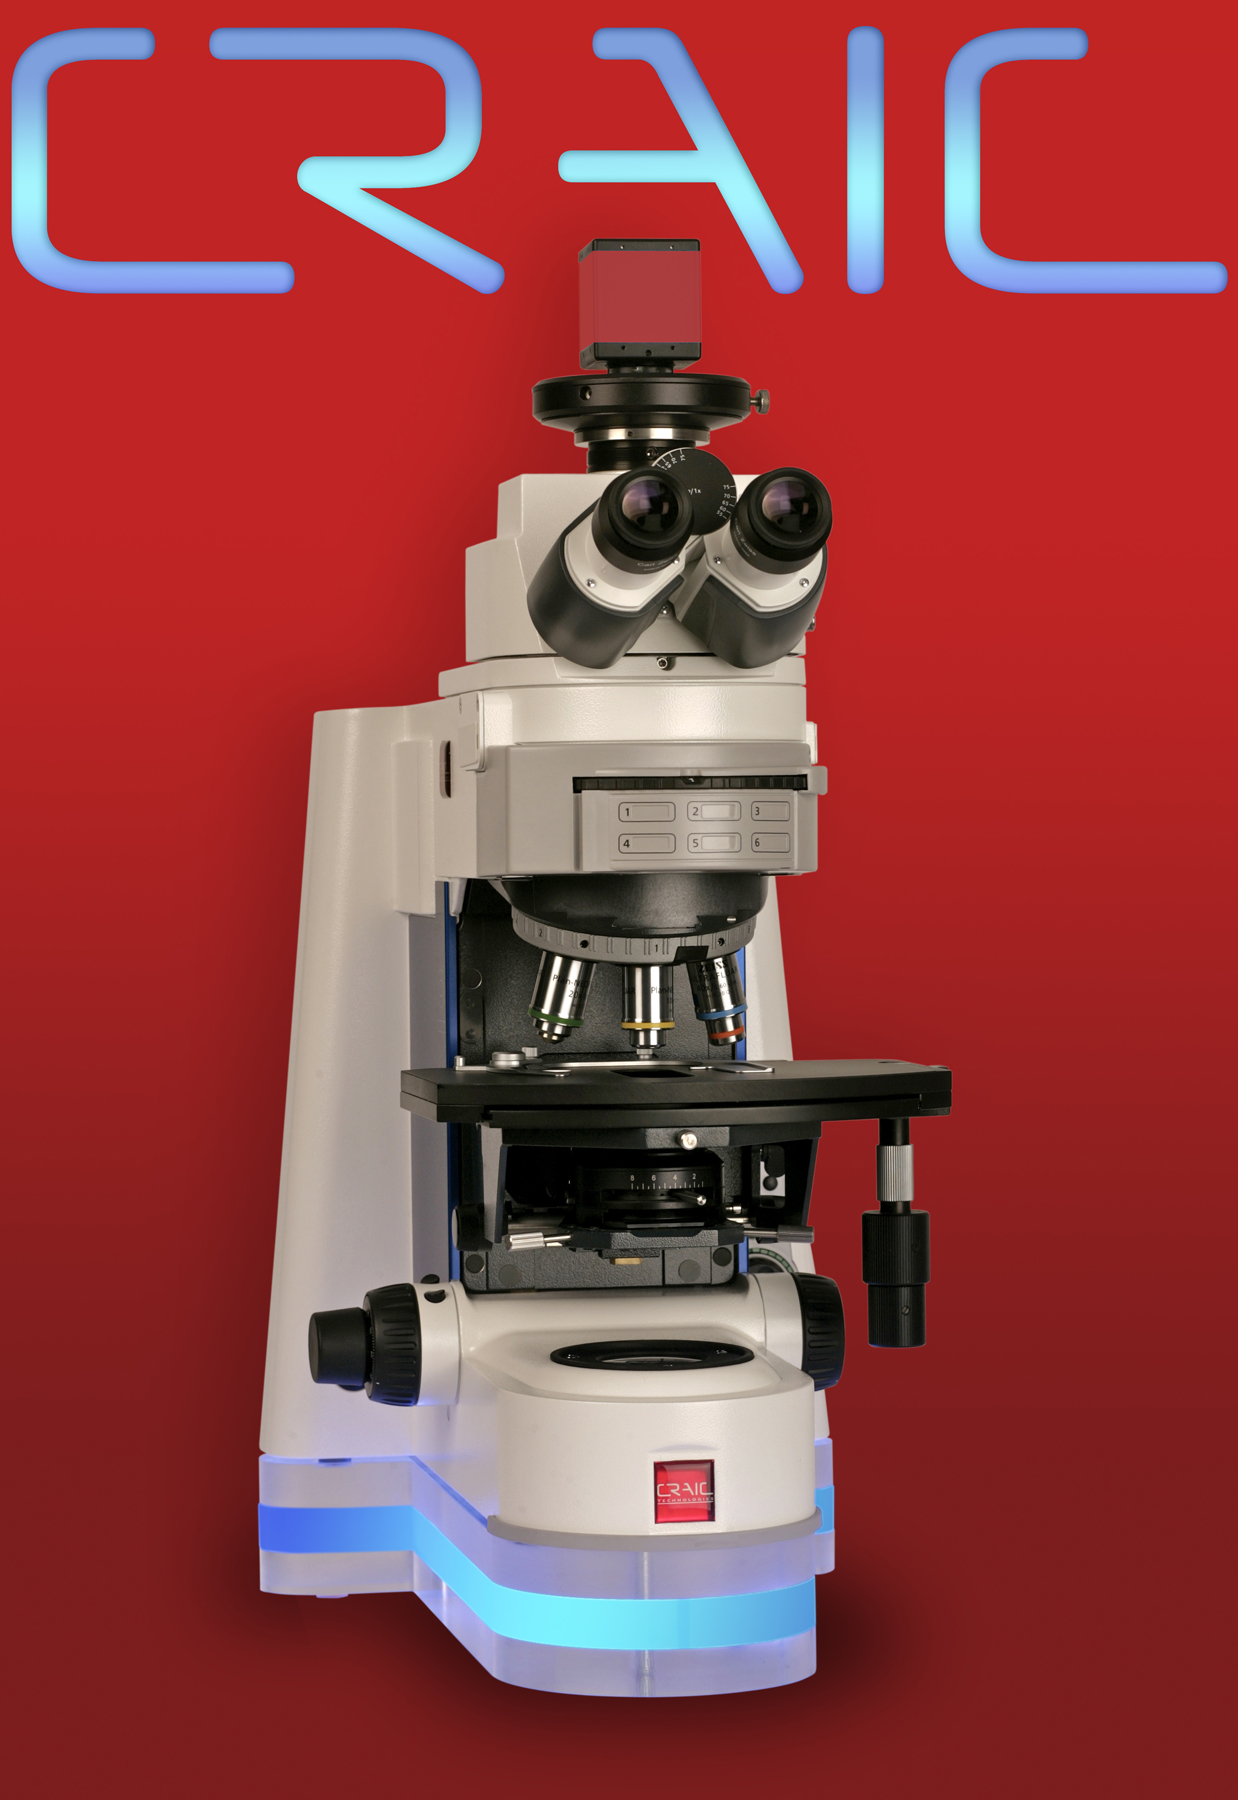 UVM-1 NIR microscope for NIR microscopy